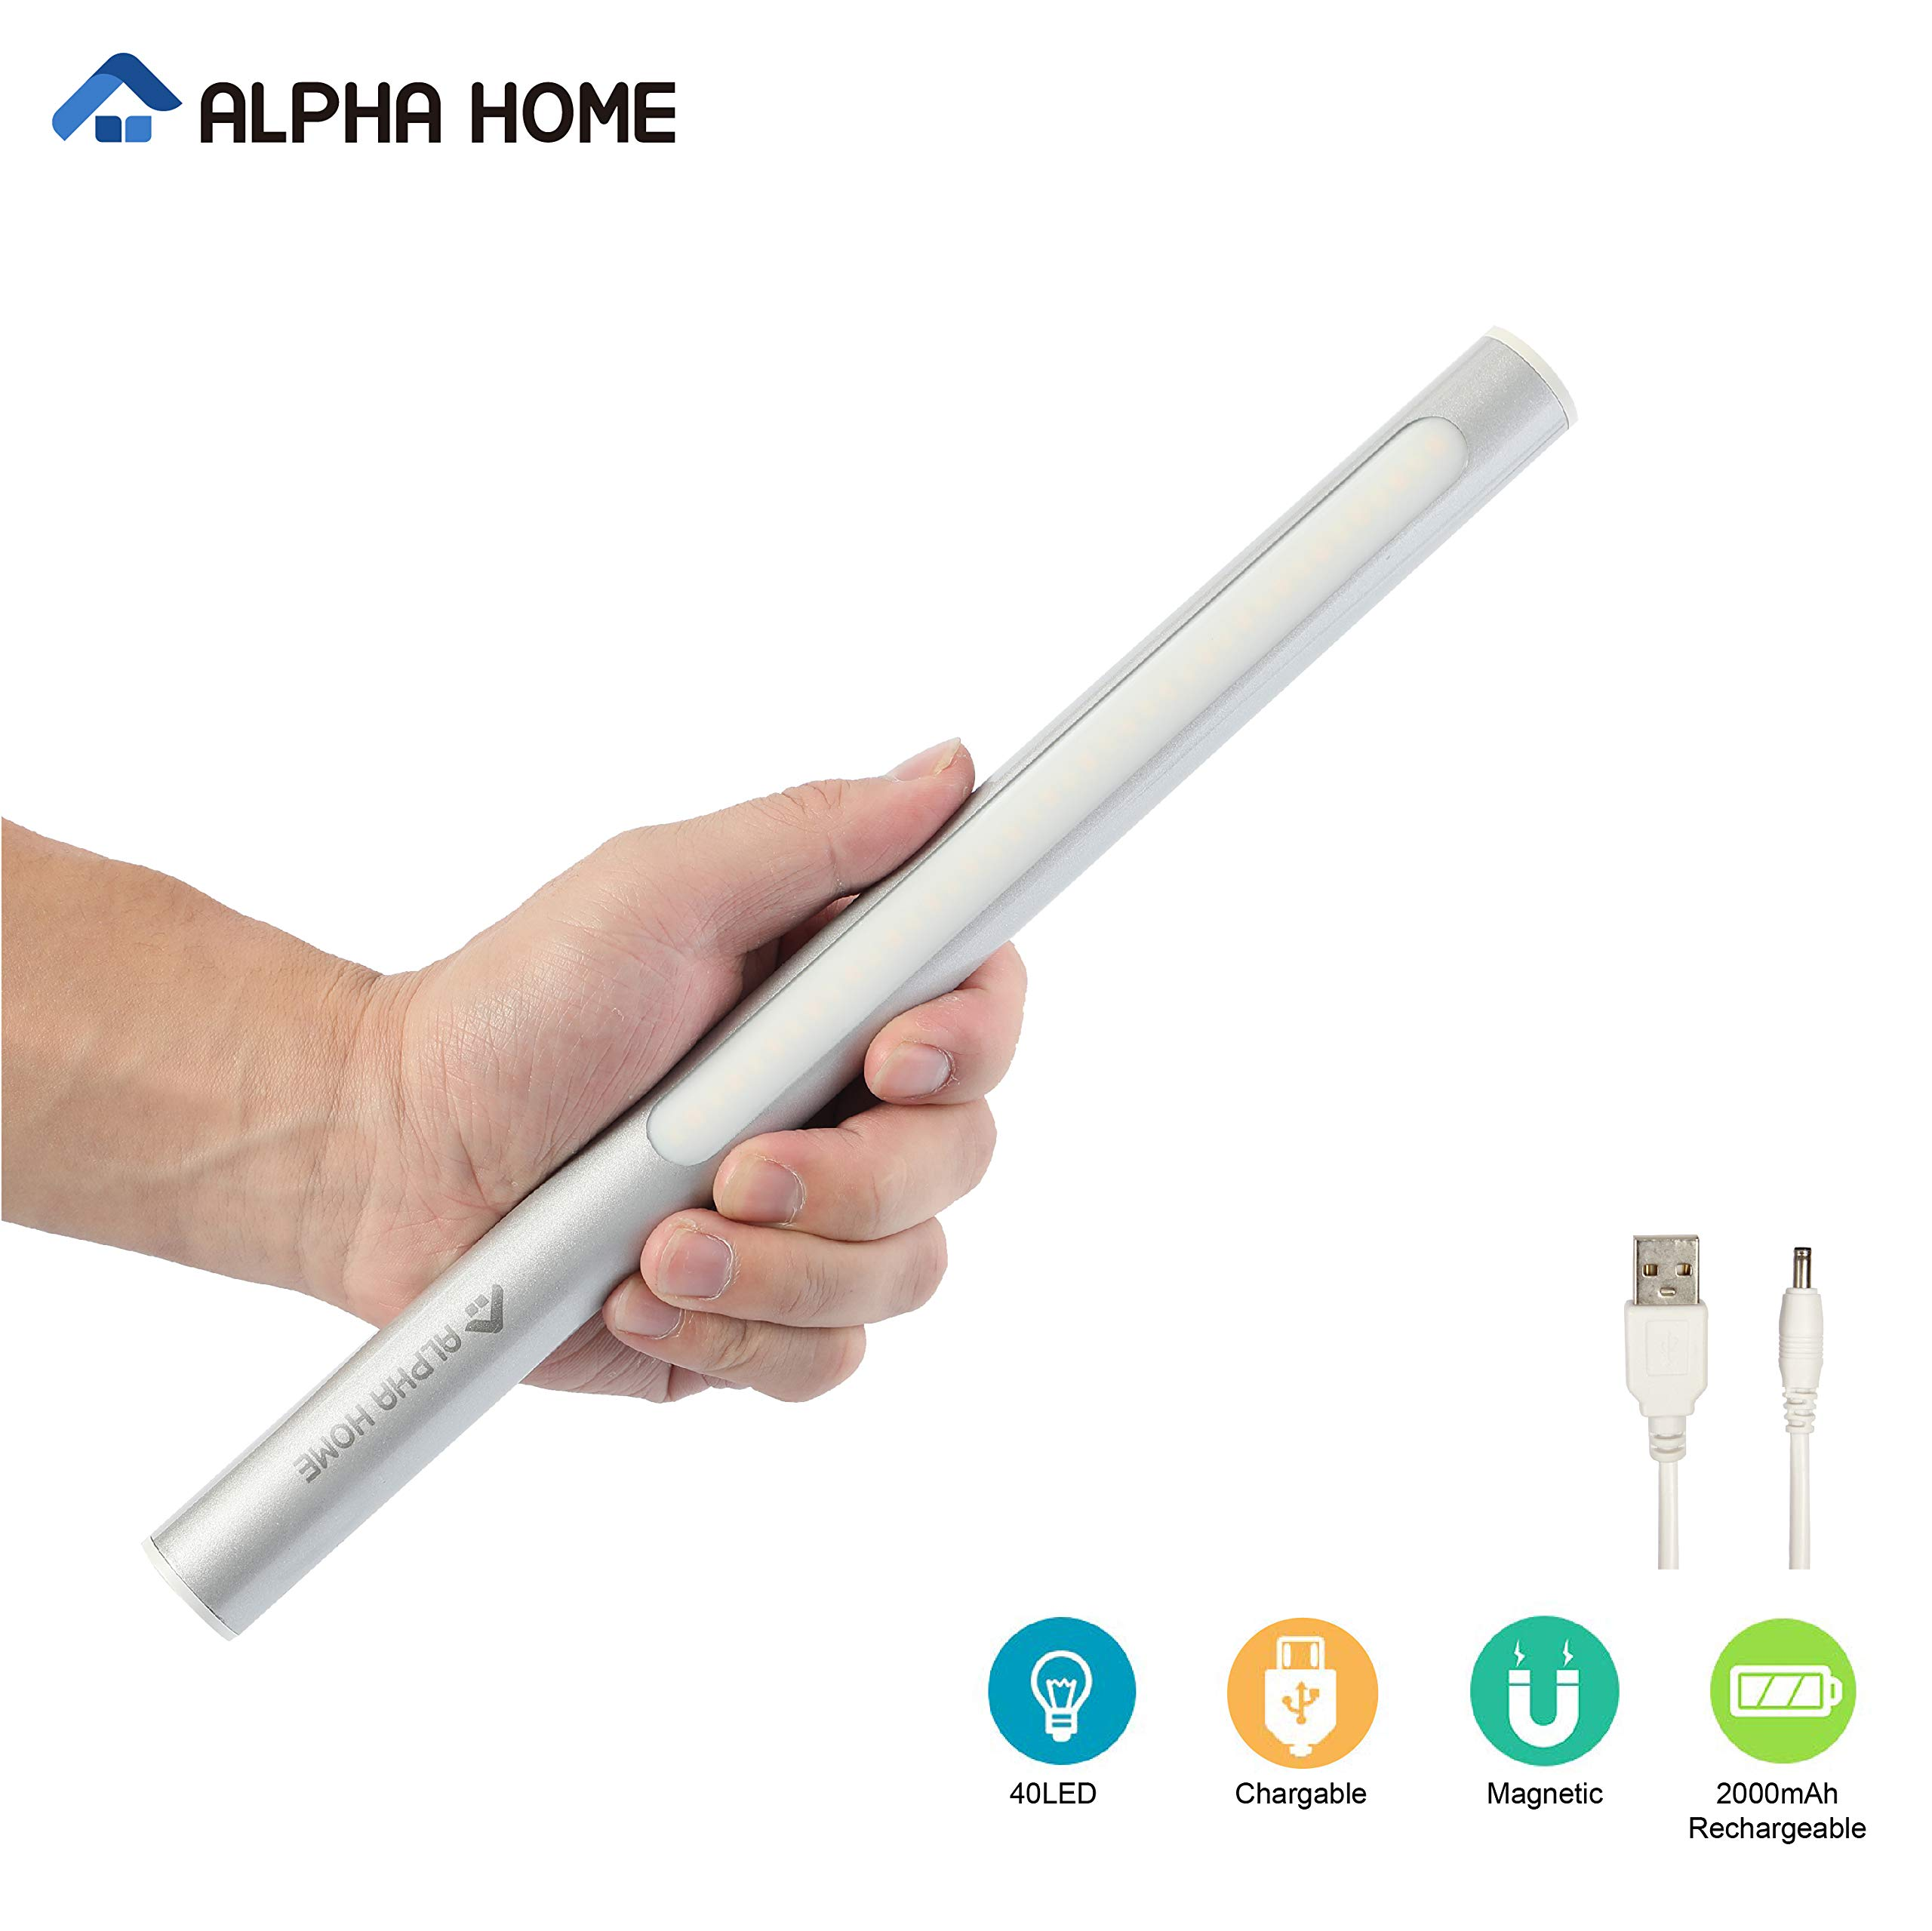 ALPHA HOME 40 LED Sport Light, Portable USB Rechargeable Cupboard Closet Light, Stick on Anywhere Magnetic LED Night Light, Silver